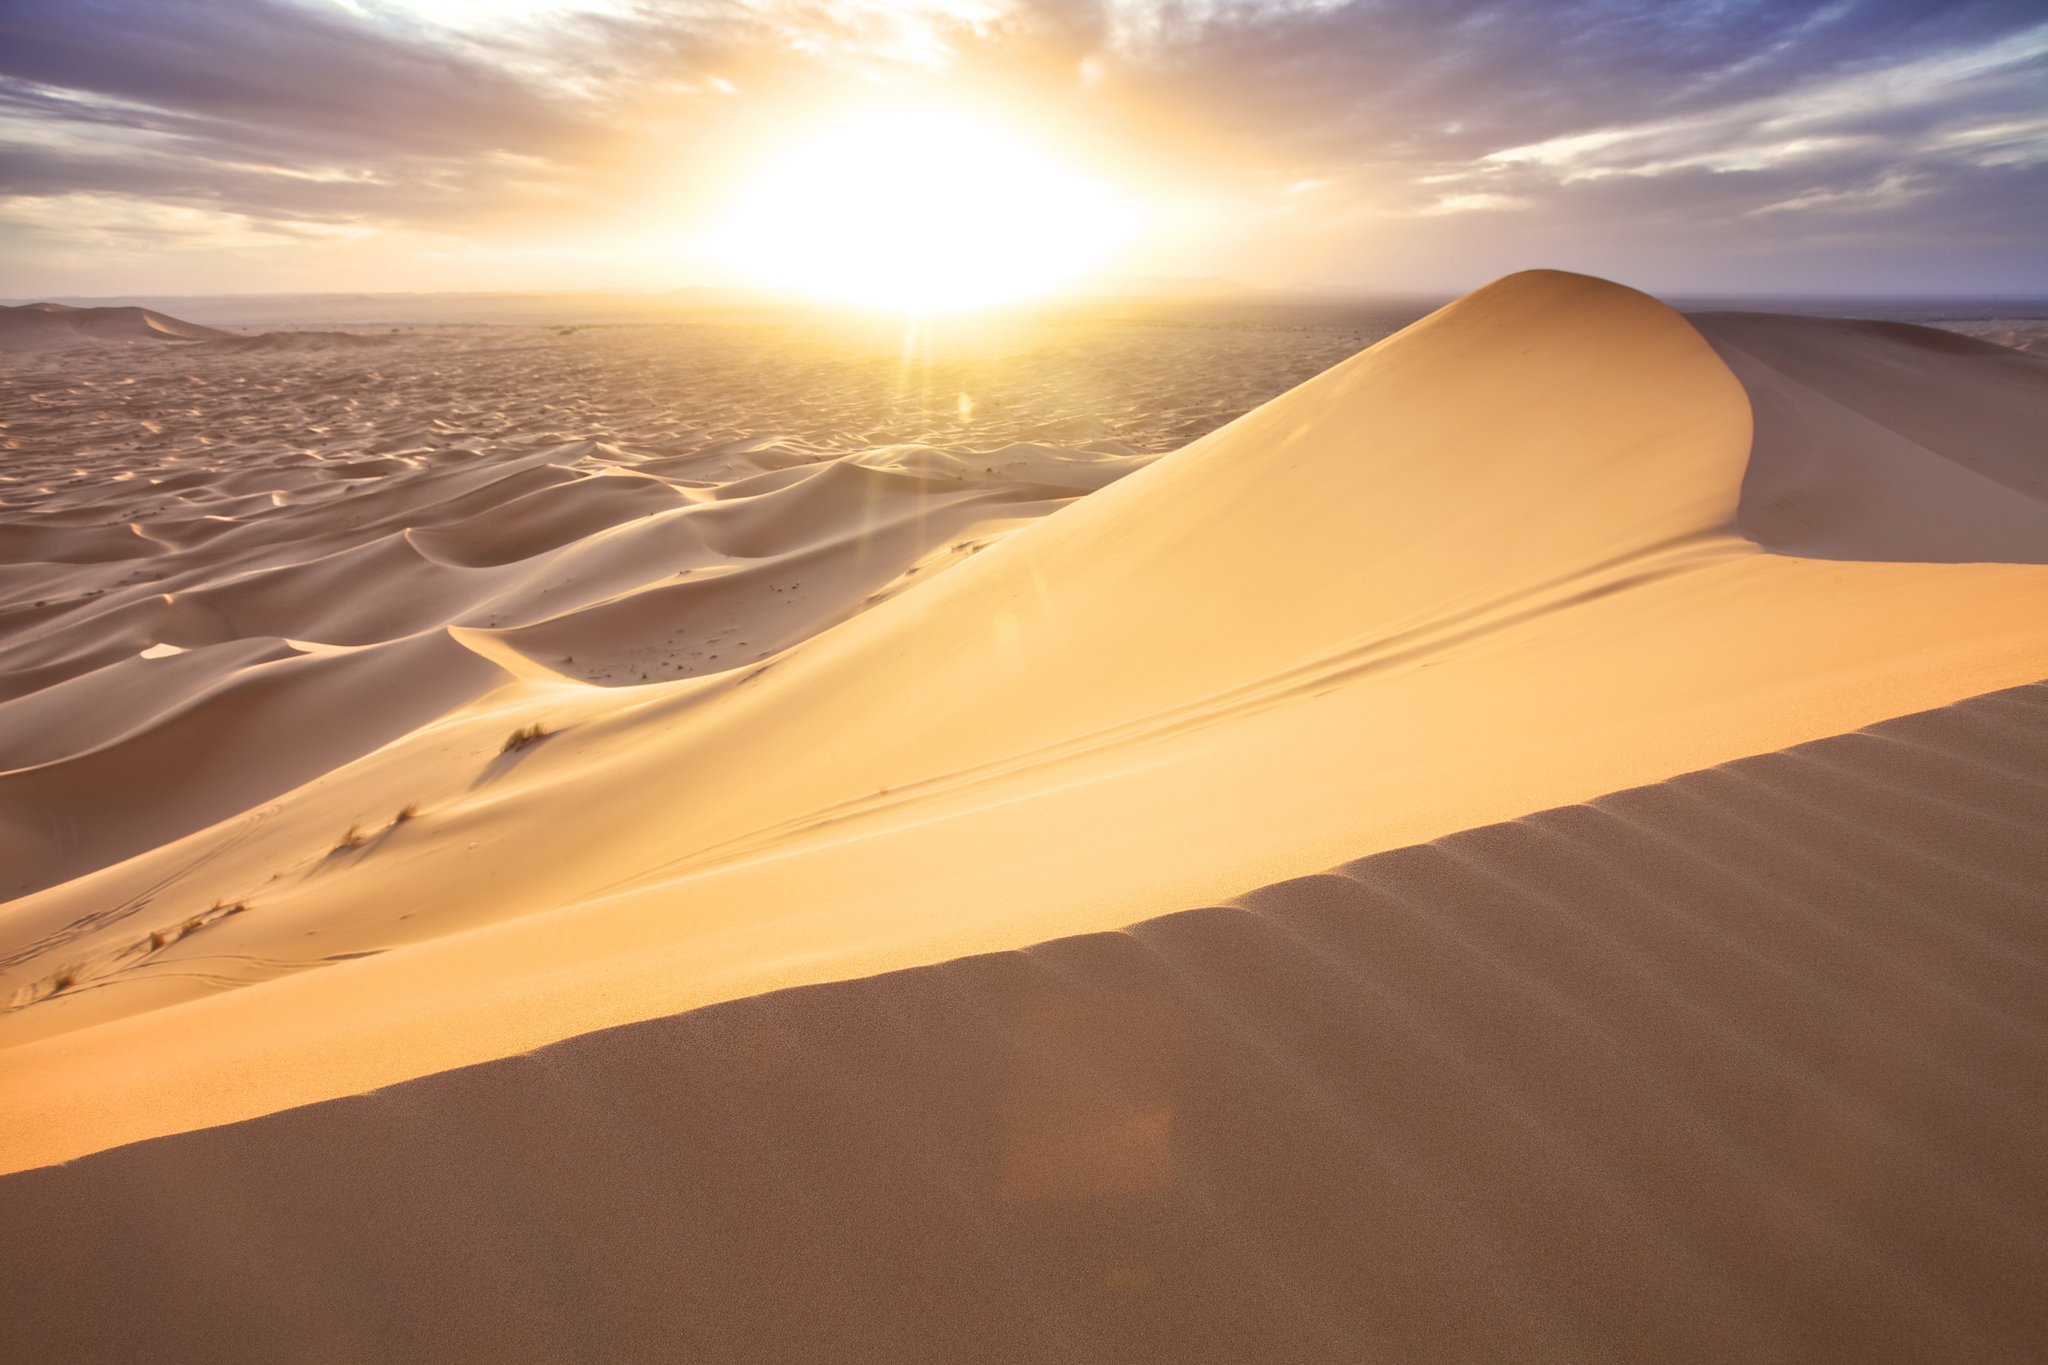 62 Sand Dunes Wallpaper On Wallpapersafari